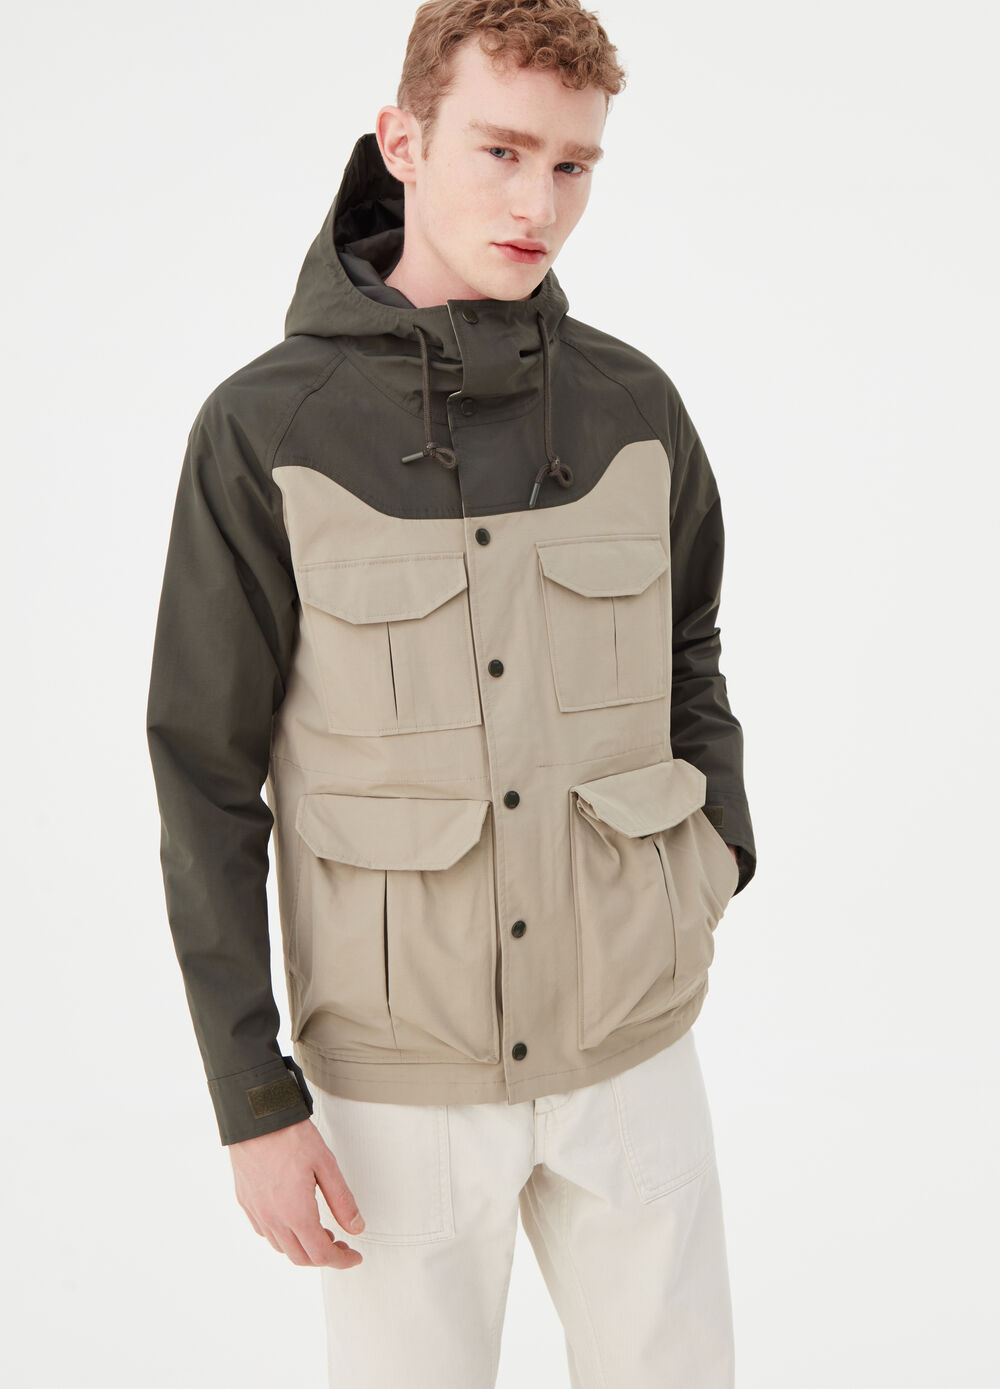 Two-tone jacket with pockets